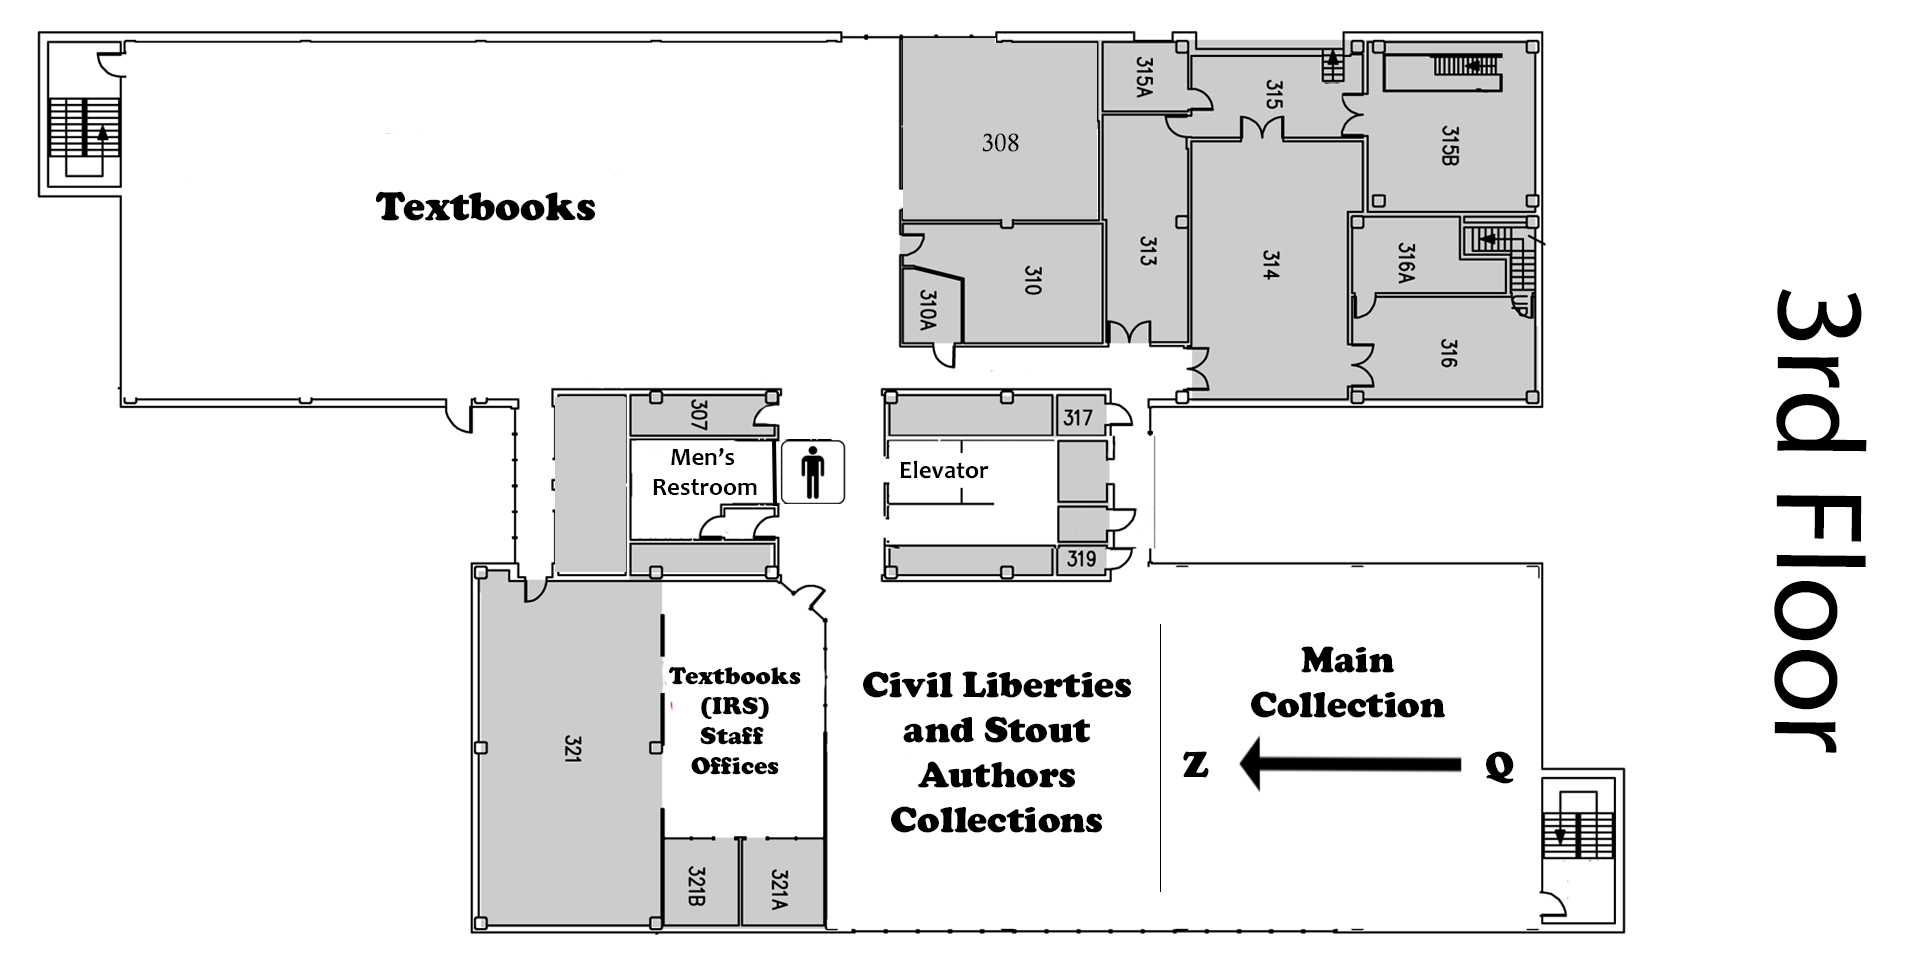 Map of the third floor of the library